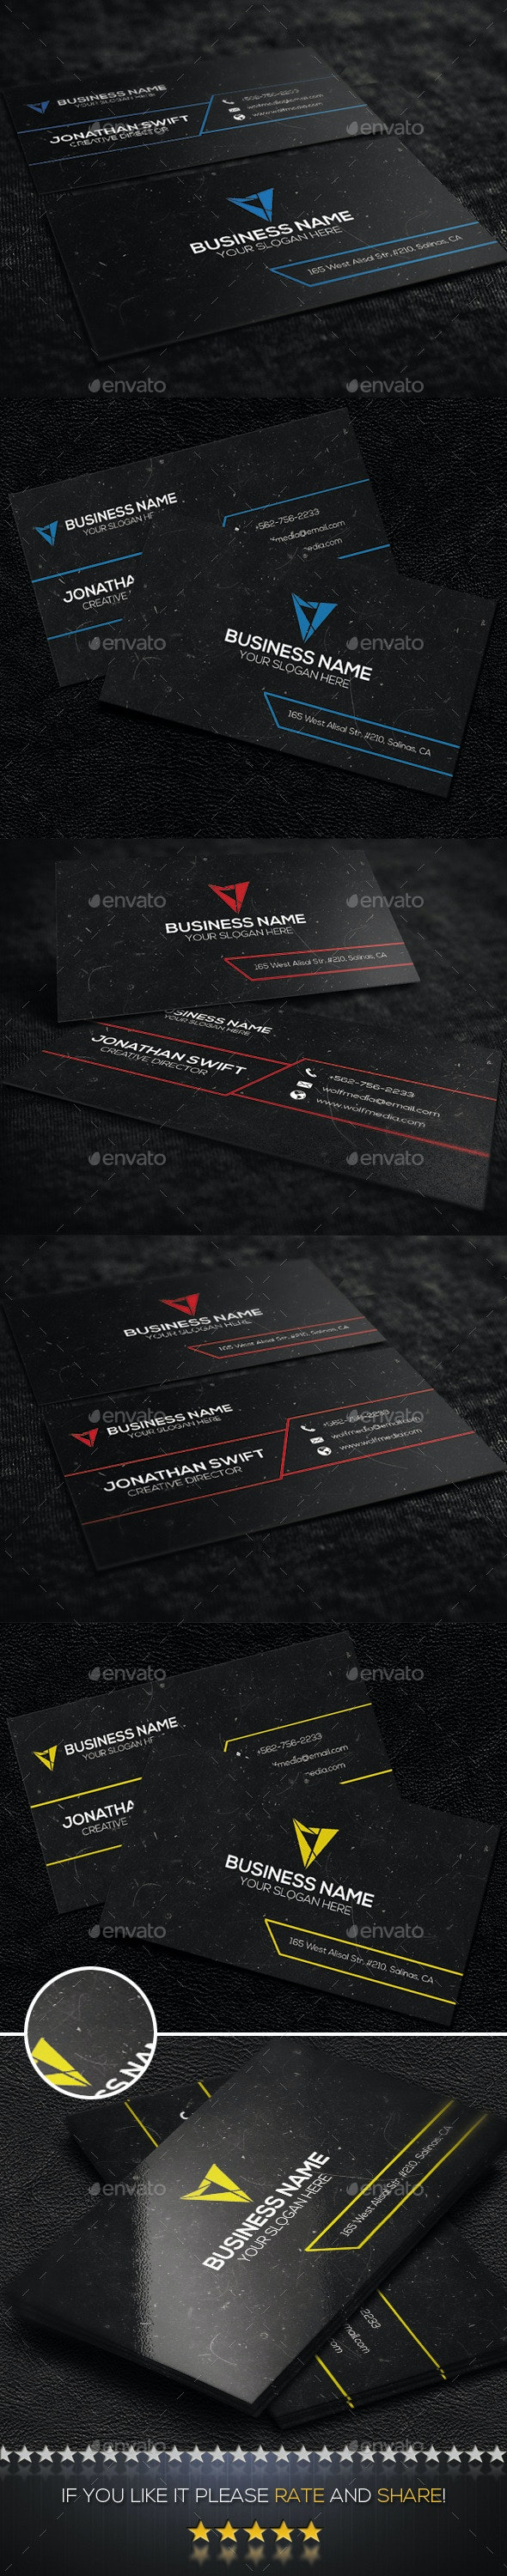 Corporate Business Card No.05 - Corporate Business Cards